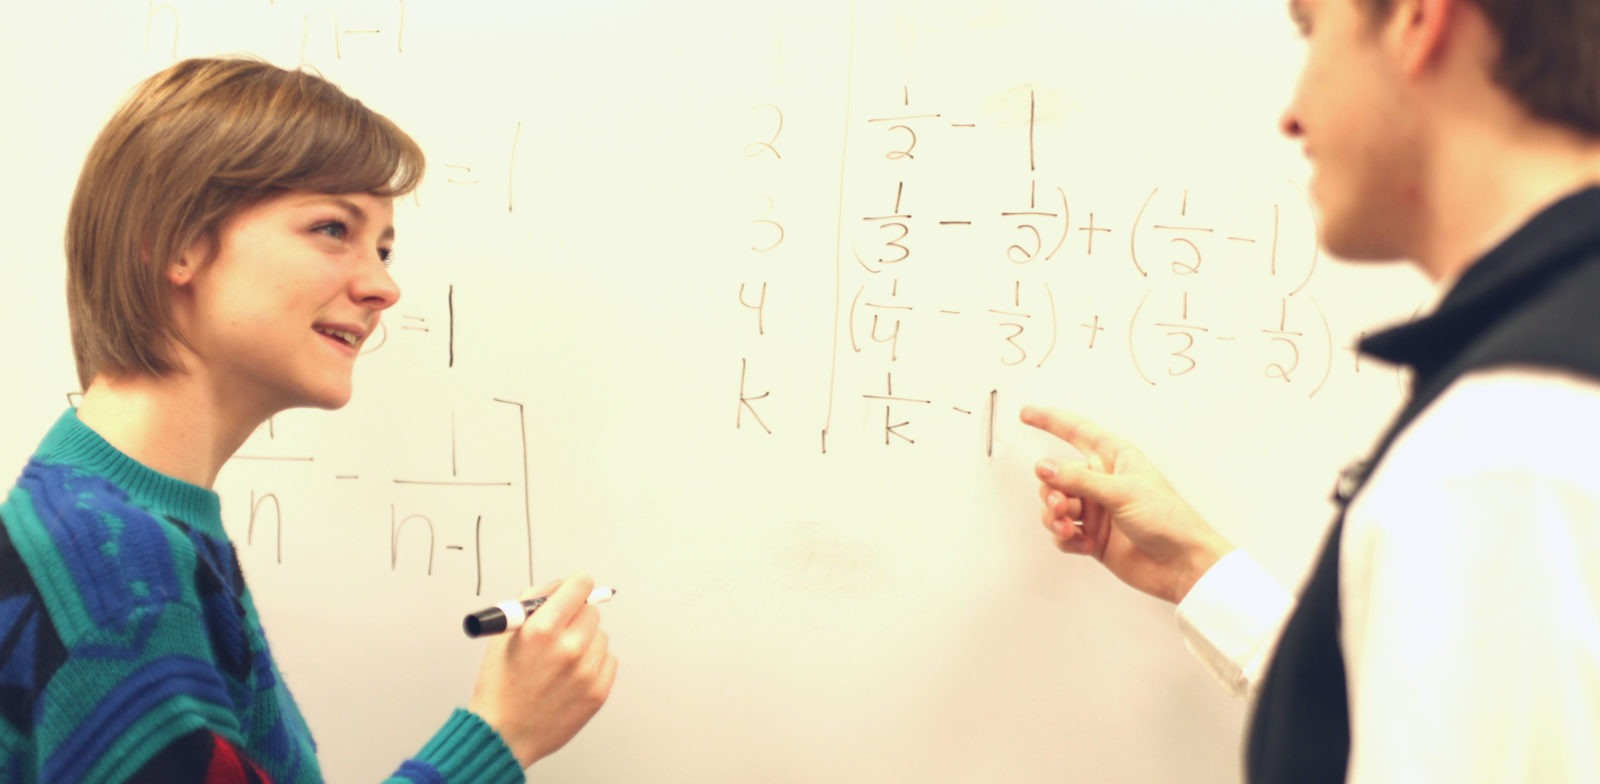 Professor and HSU solving math problems on white board